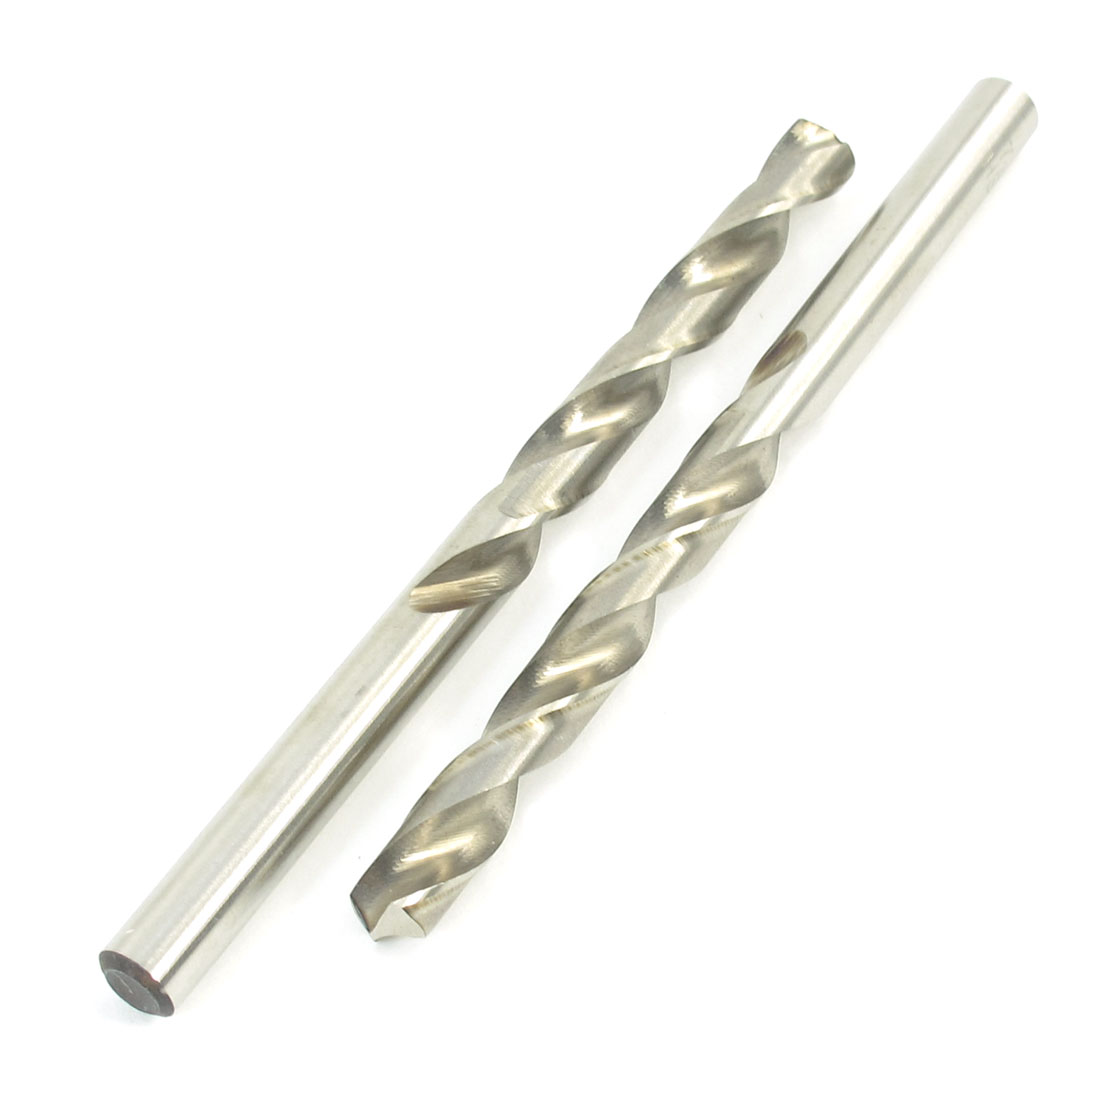 2 Pcs 7.4mm High Speed Steel Straight Shank Spiral Twist Drill Bit